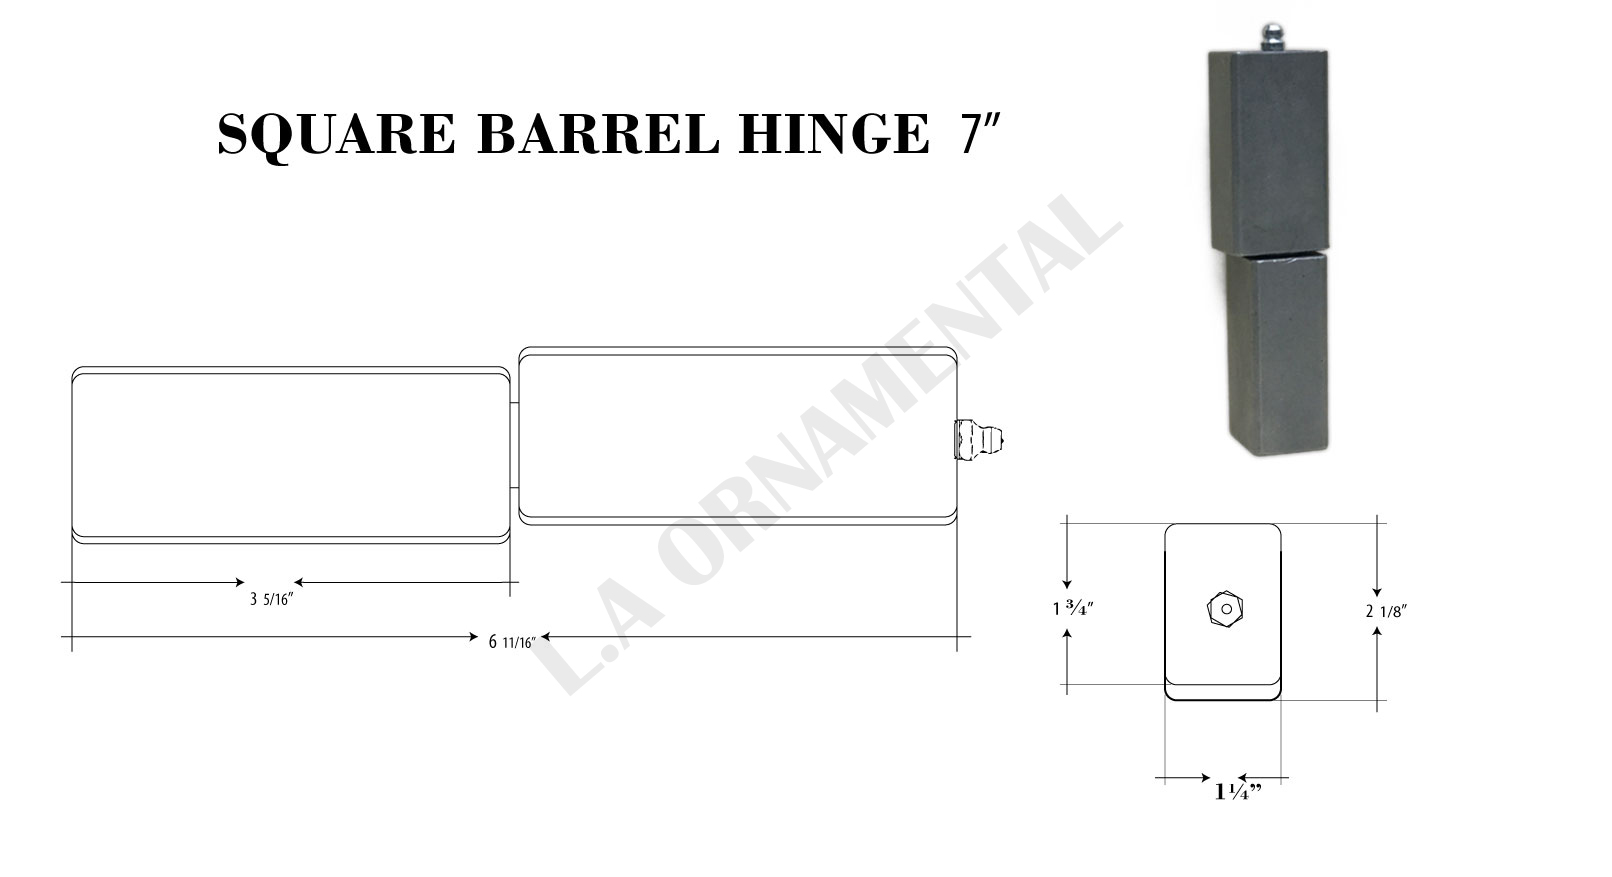 5/8 J-Bolt Adjustable Heavy Duty Hinge Heavy Gates 3/4